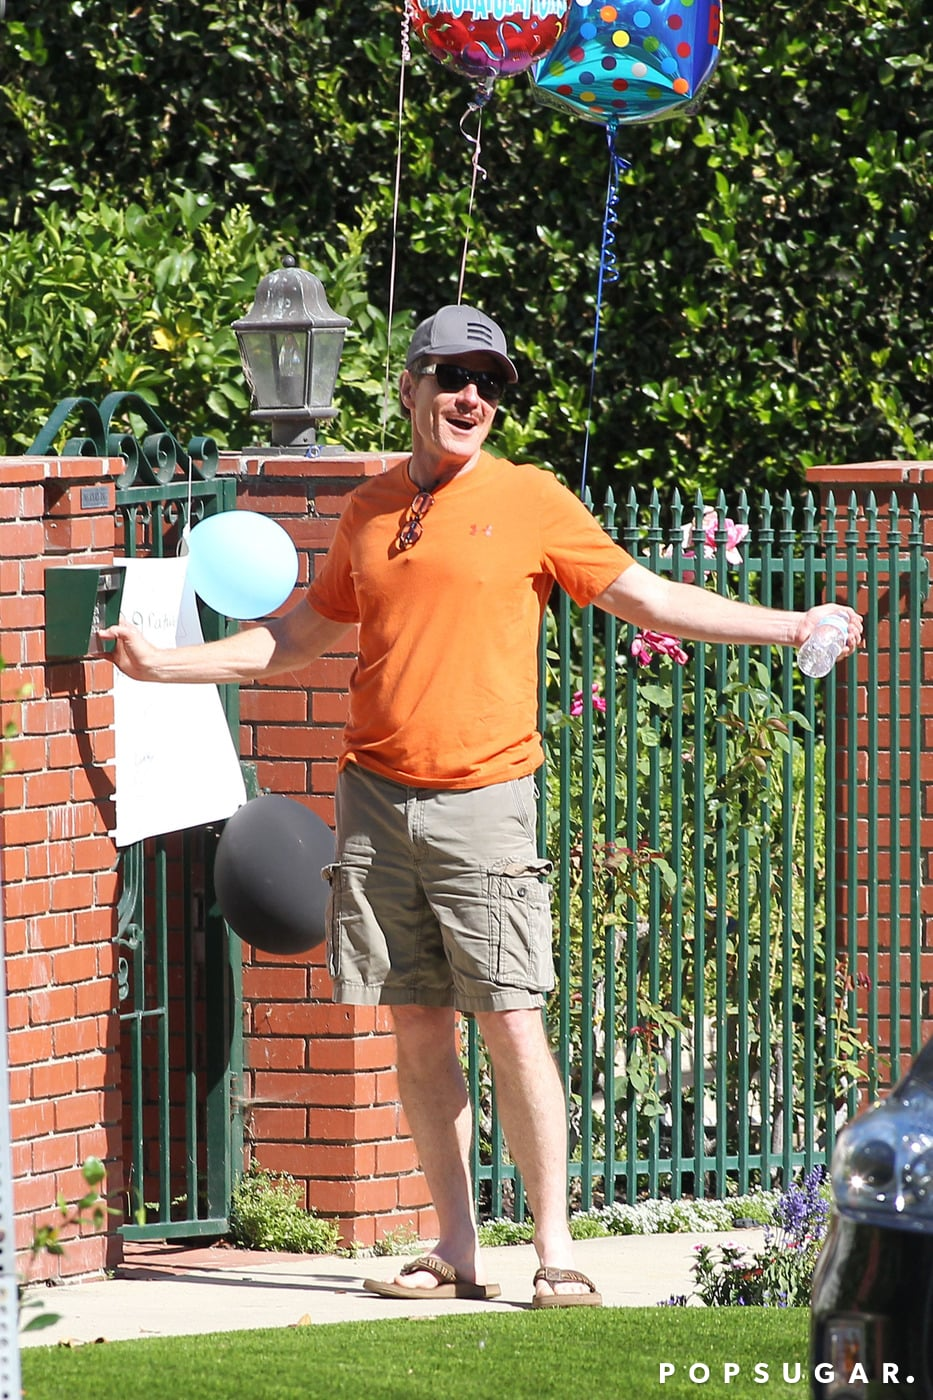 Emmy Winner Bryan Cranston Gets Welcomed Home With Balloons and a Sweet Sign